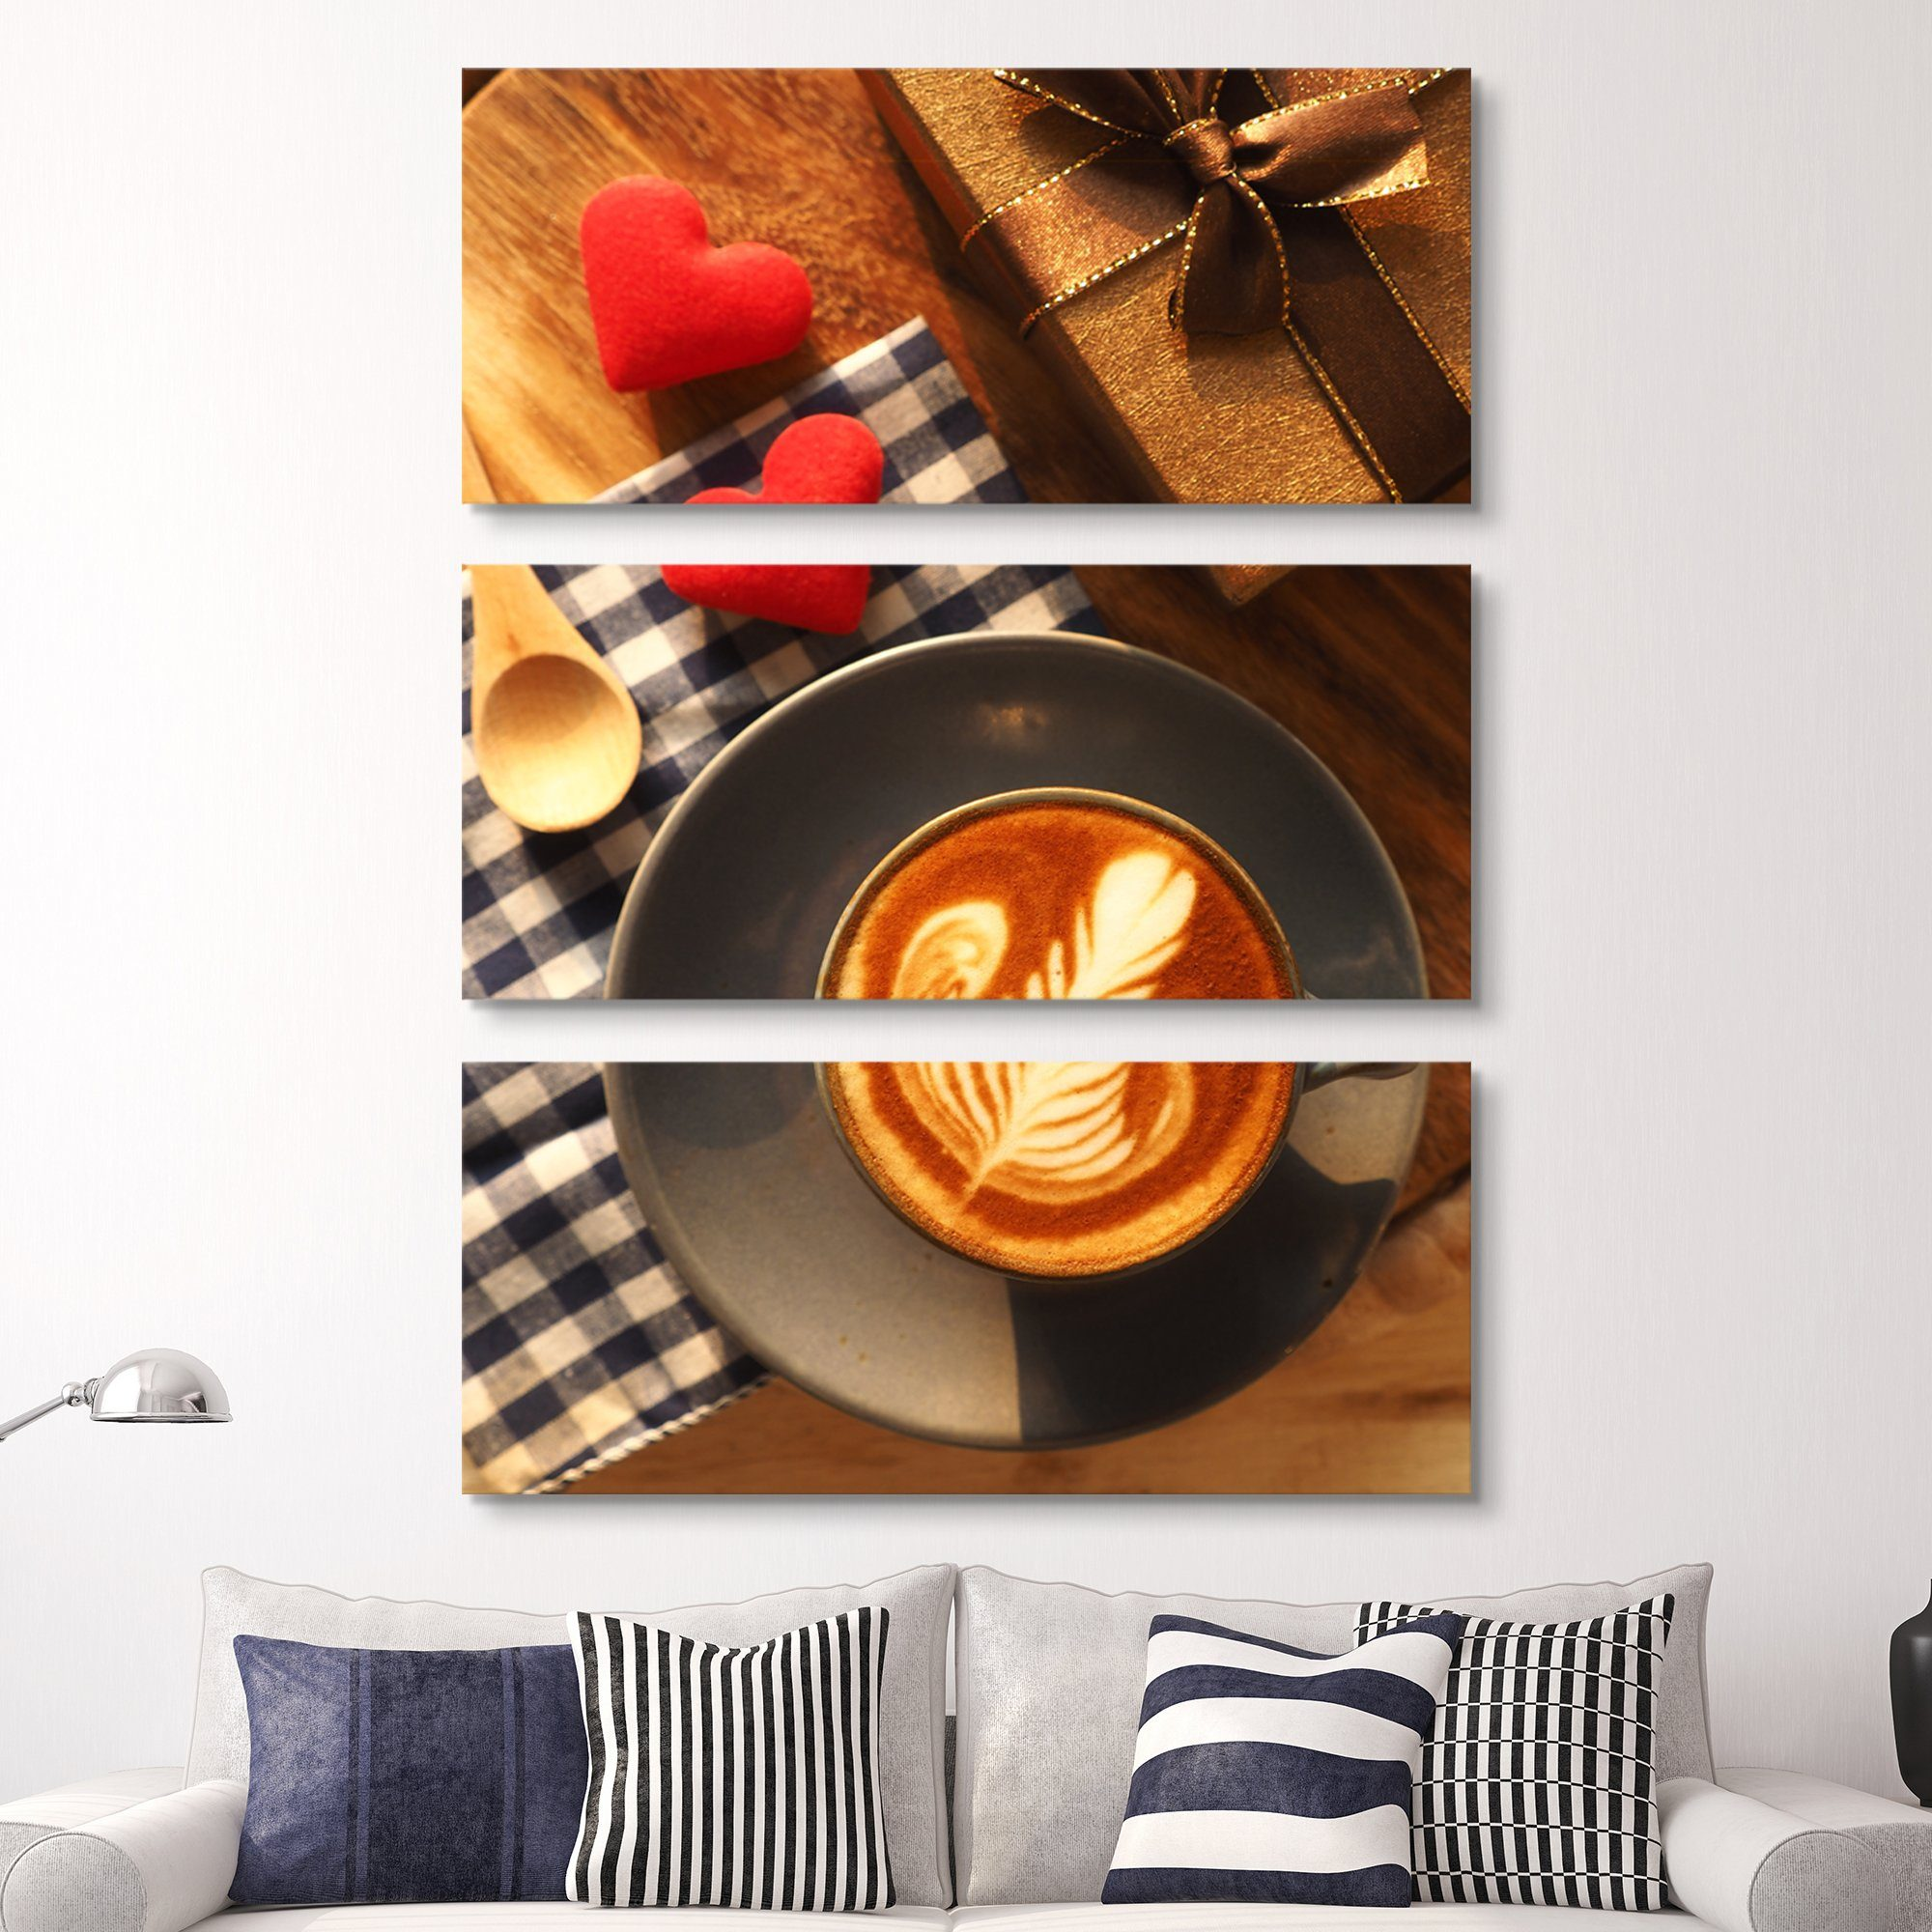 3 piece Hearts and Coffee wall art